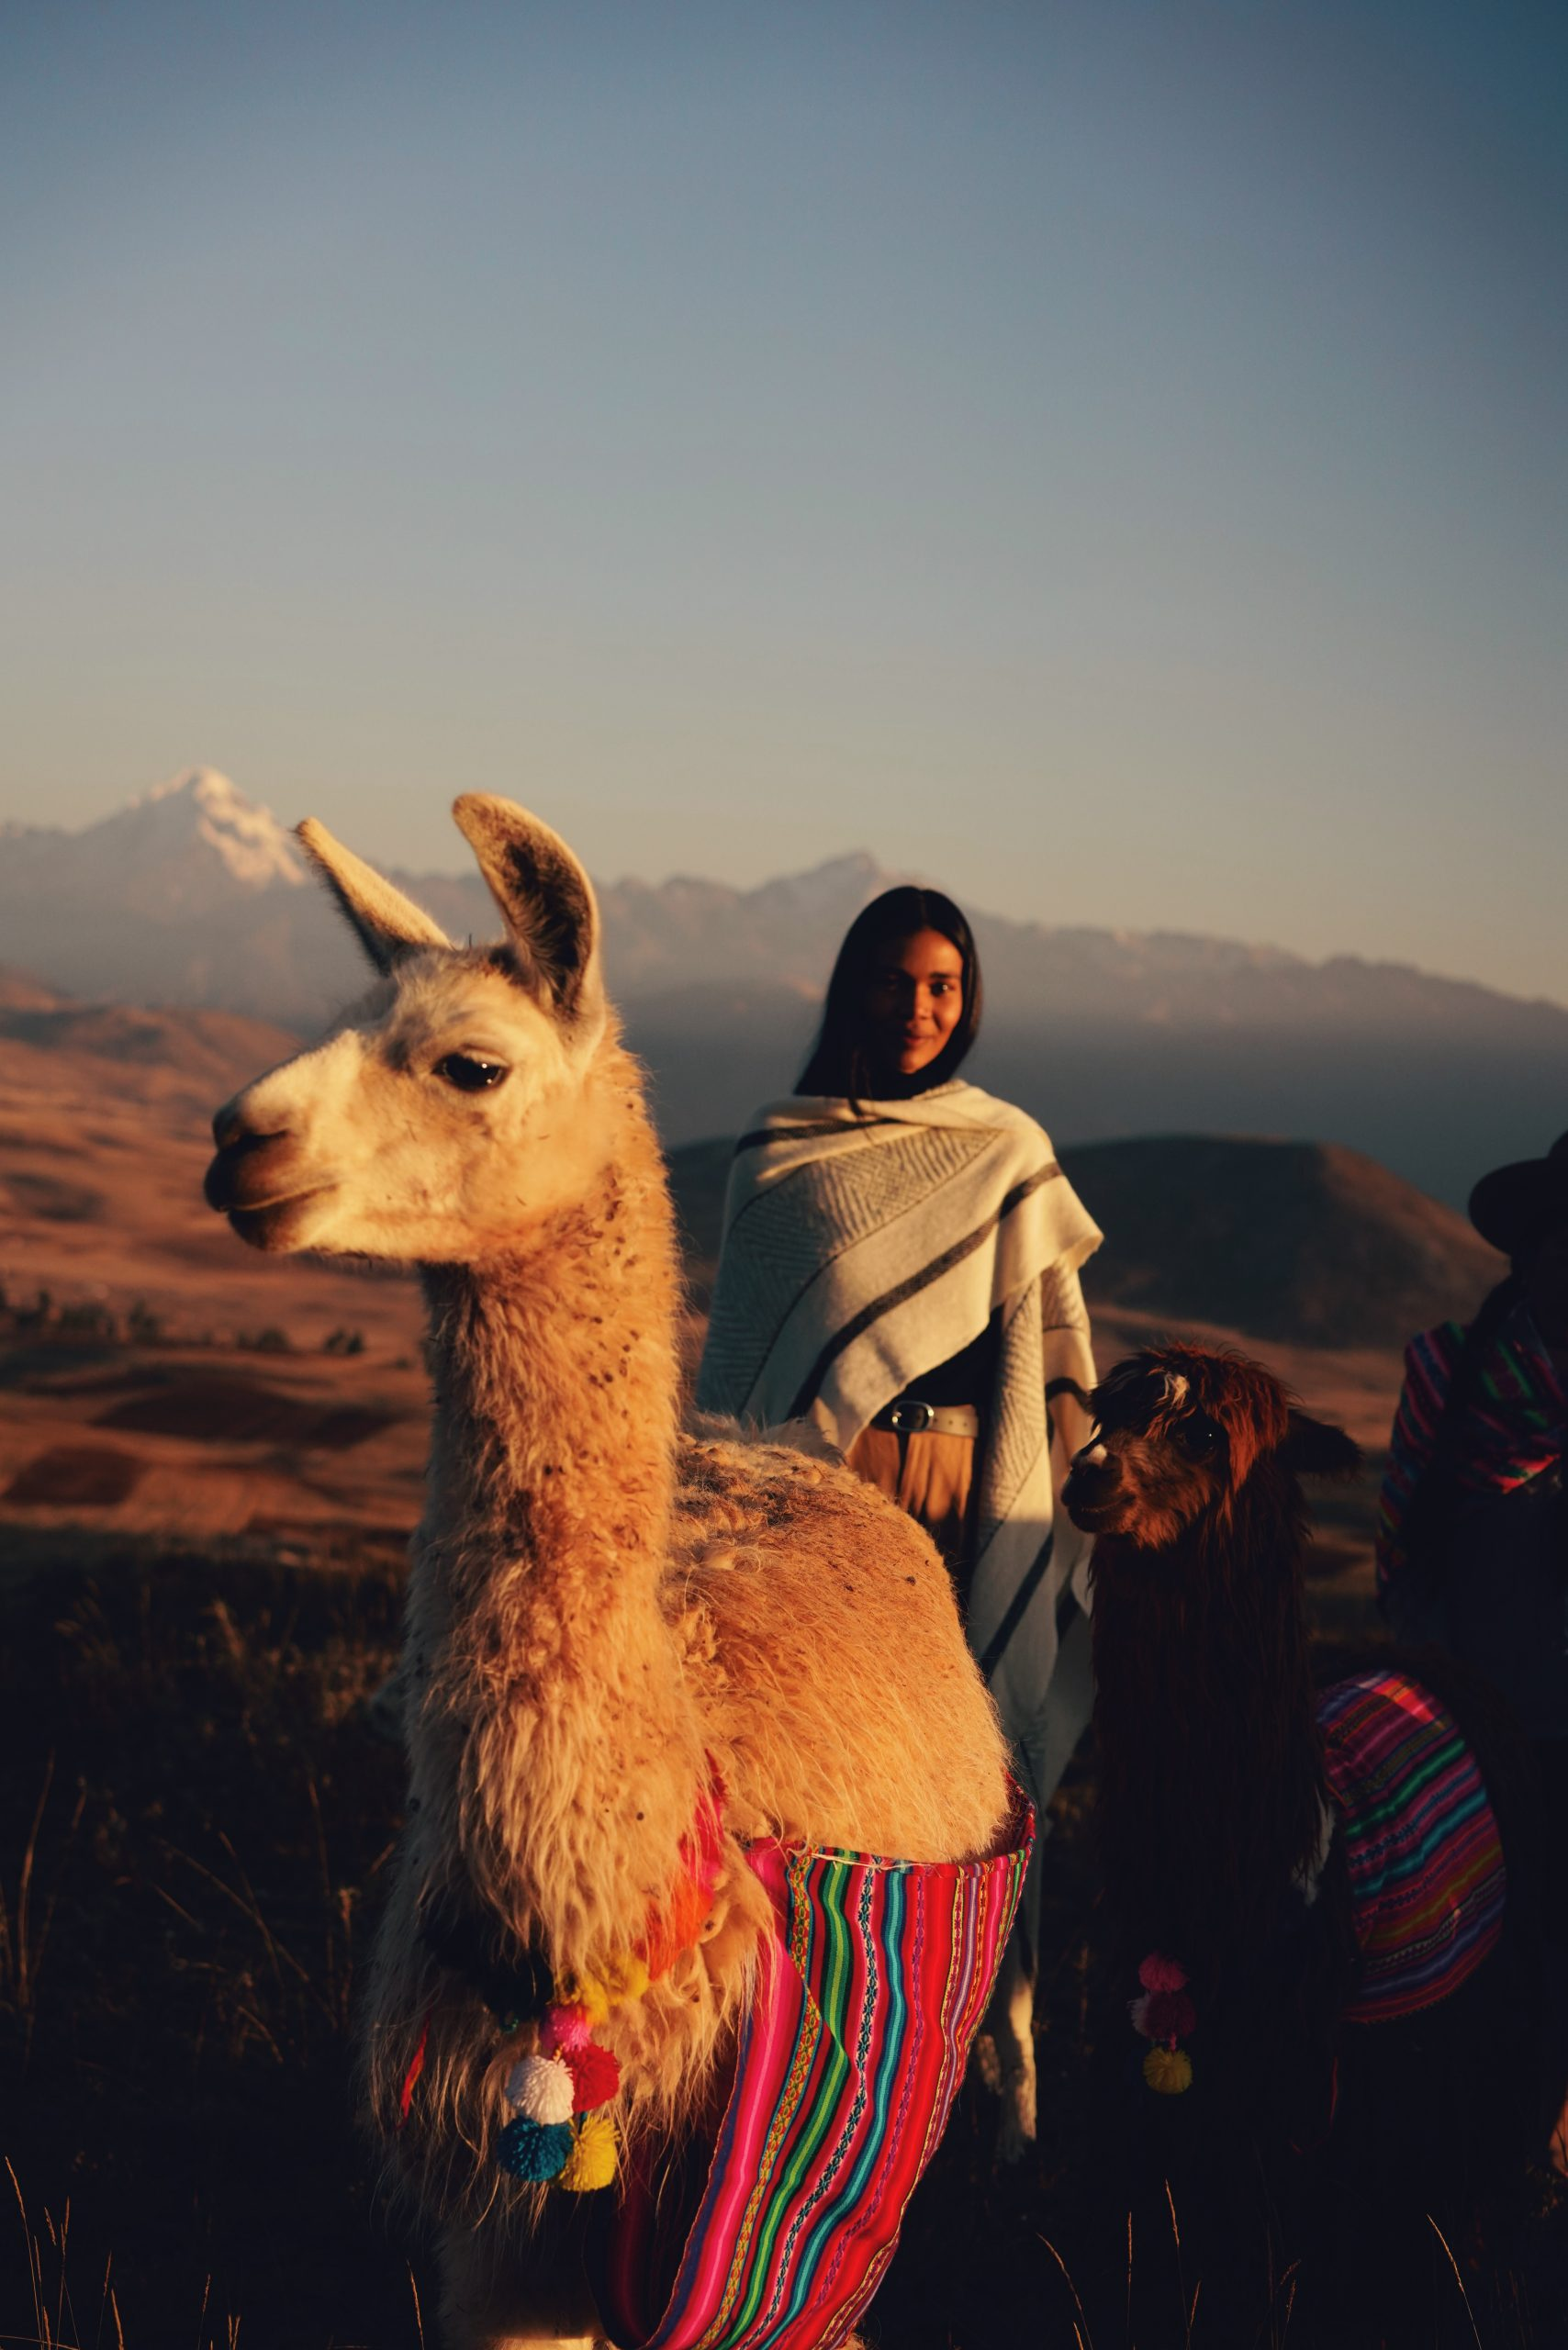 Color travel photography by Pia Riverola, woman riding Lama, Andes, Peru